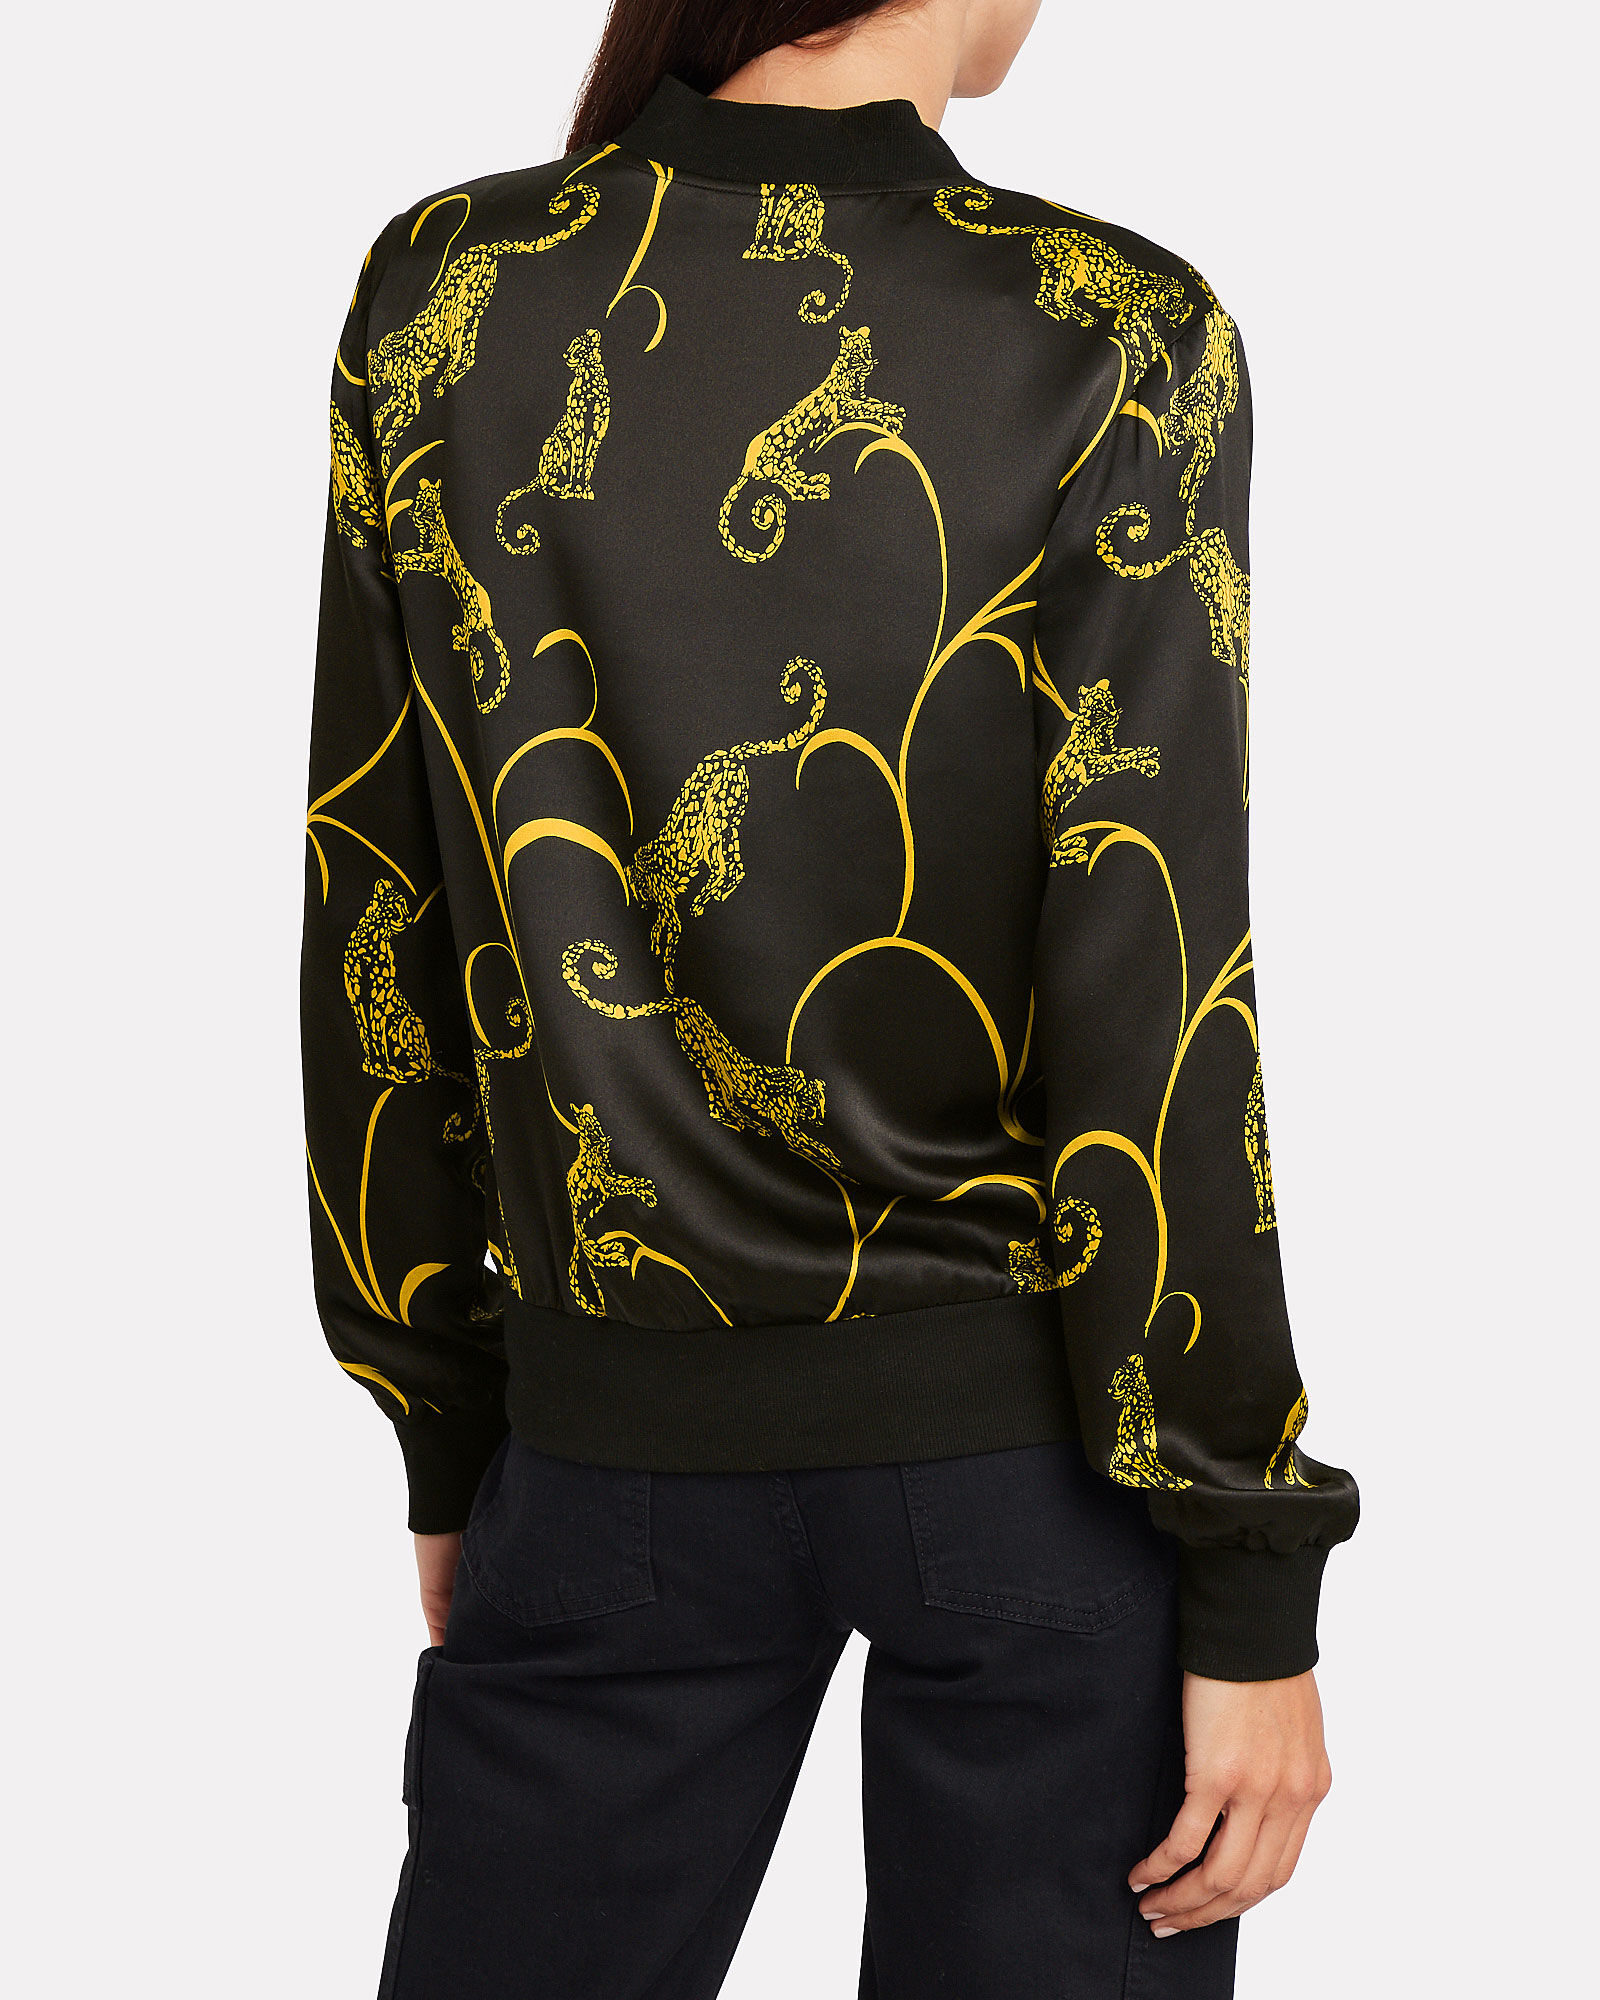 Ollie Silk Bomber Jacket, GOLD/TIGER, hi-res